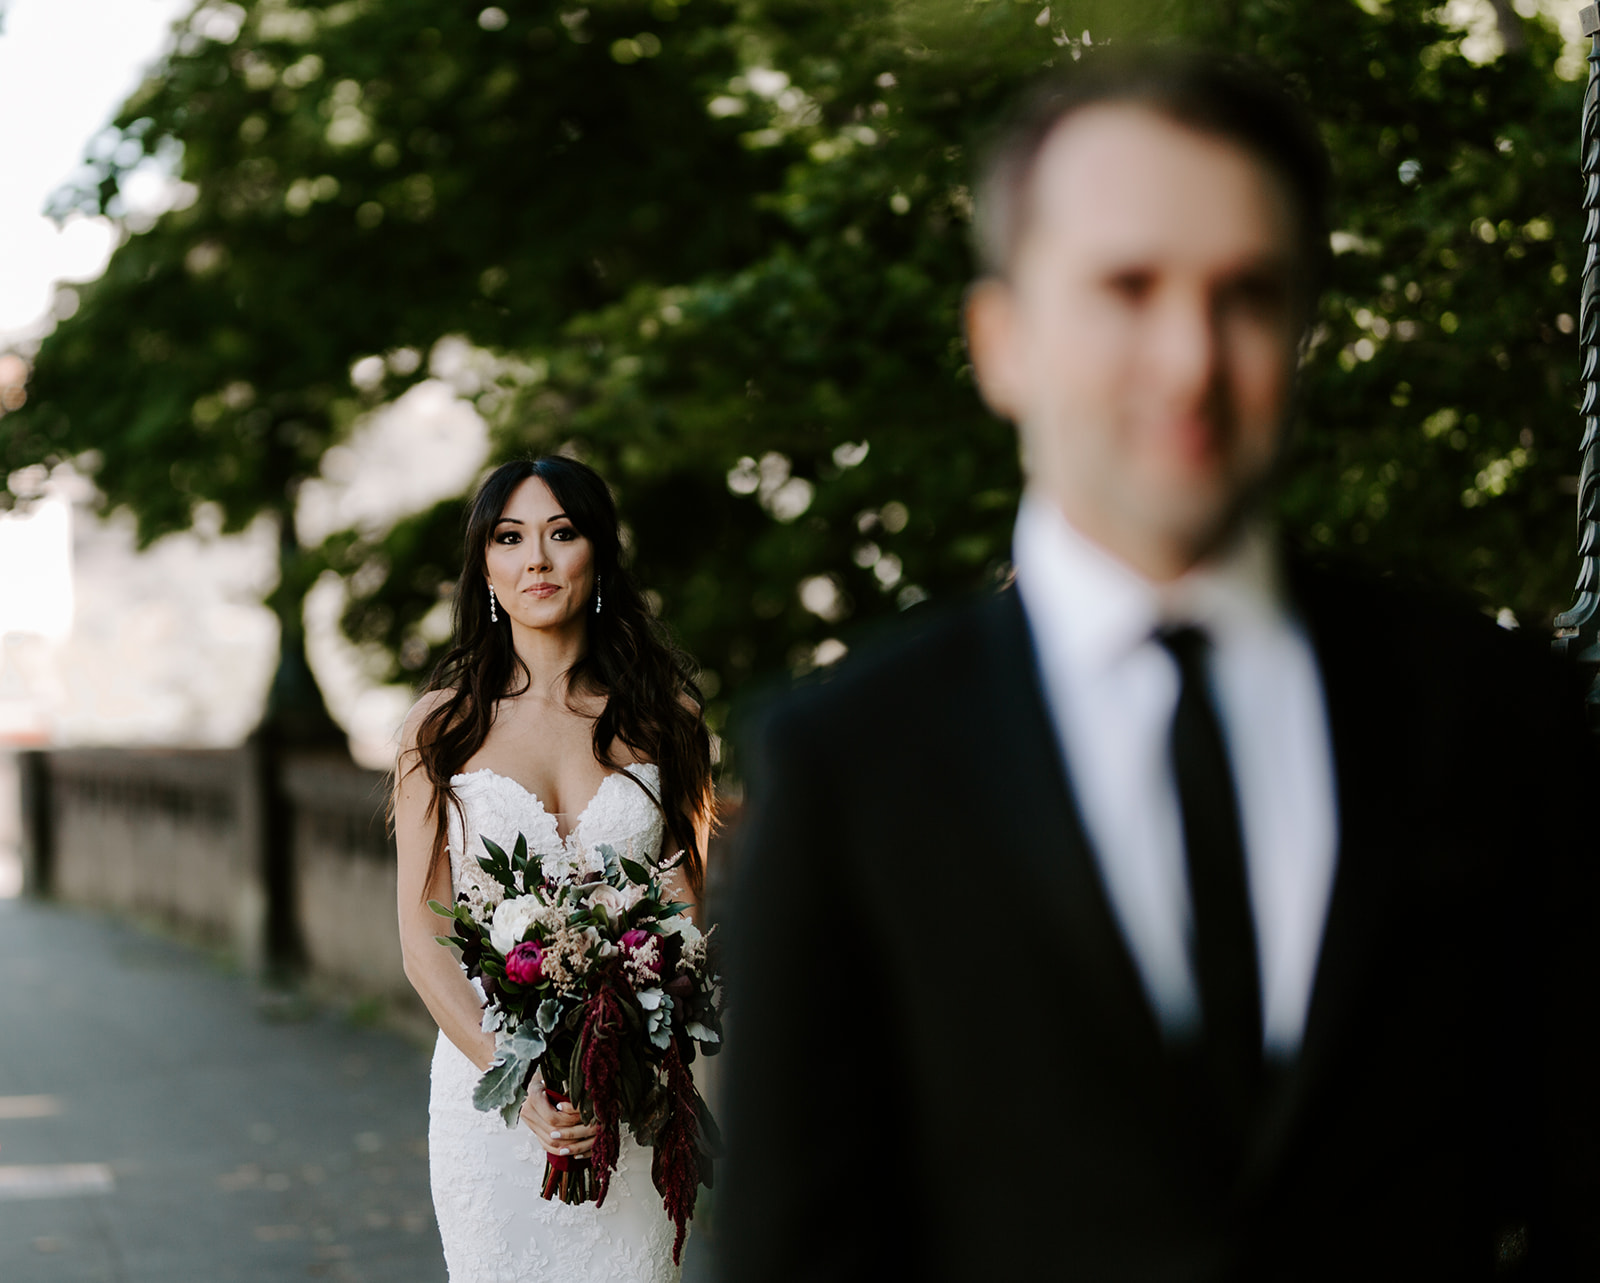 Jenny + Luke - Parsons Gardens - Seattle Washington - Sneak Peeks! Meme Urbane Photography-18_websize.jpg